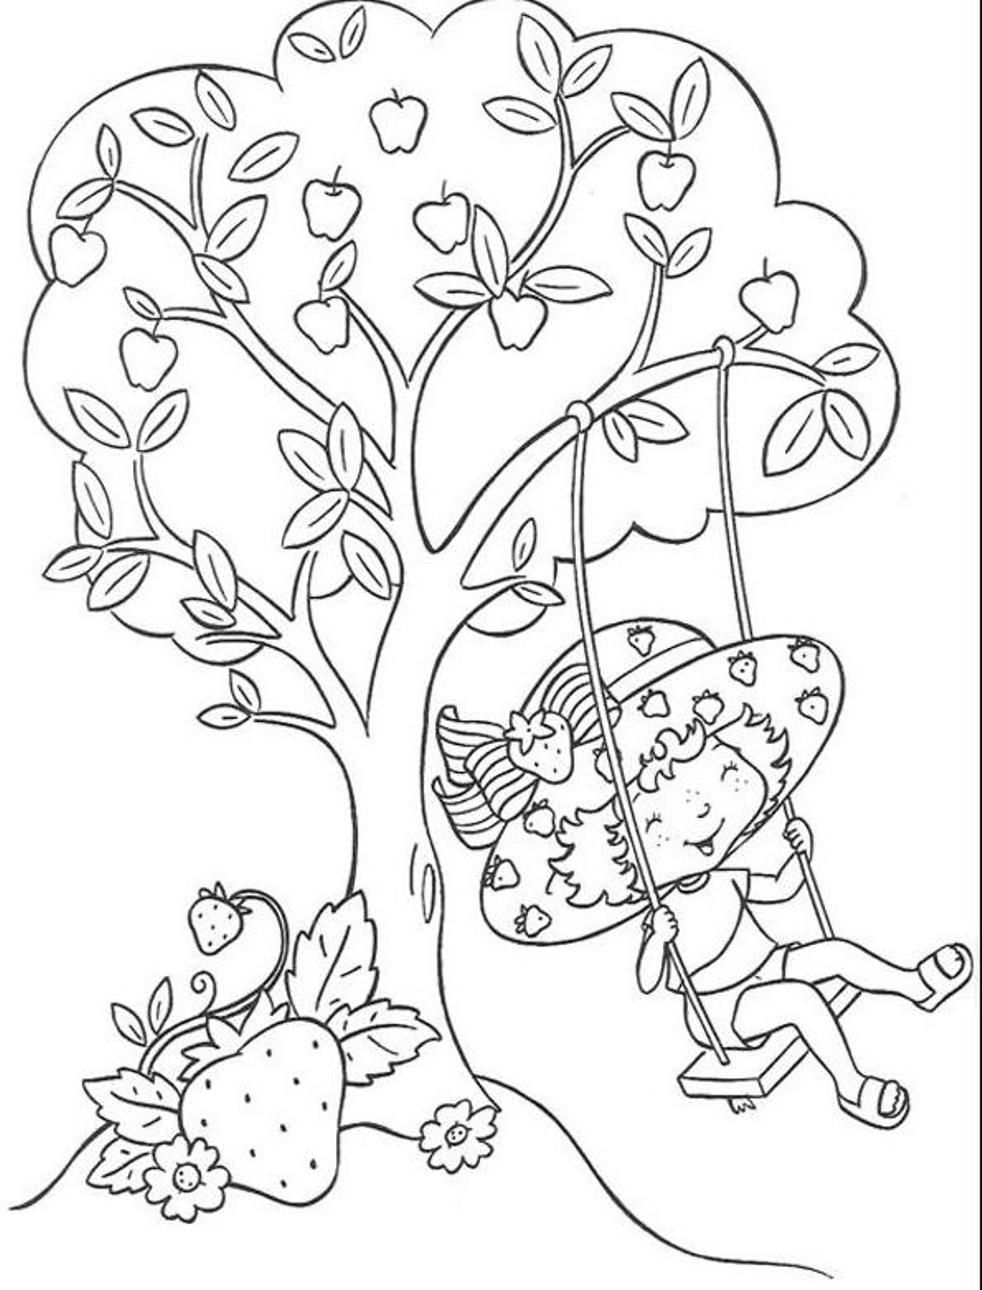 coloring pages of strawberry shortcake and friends strawberry shortcake and friends coloring pages of shortcake friends and strawberry coloring pages